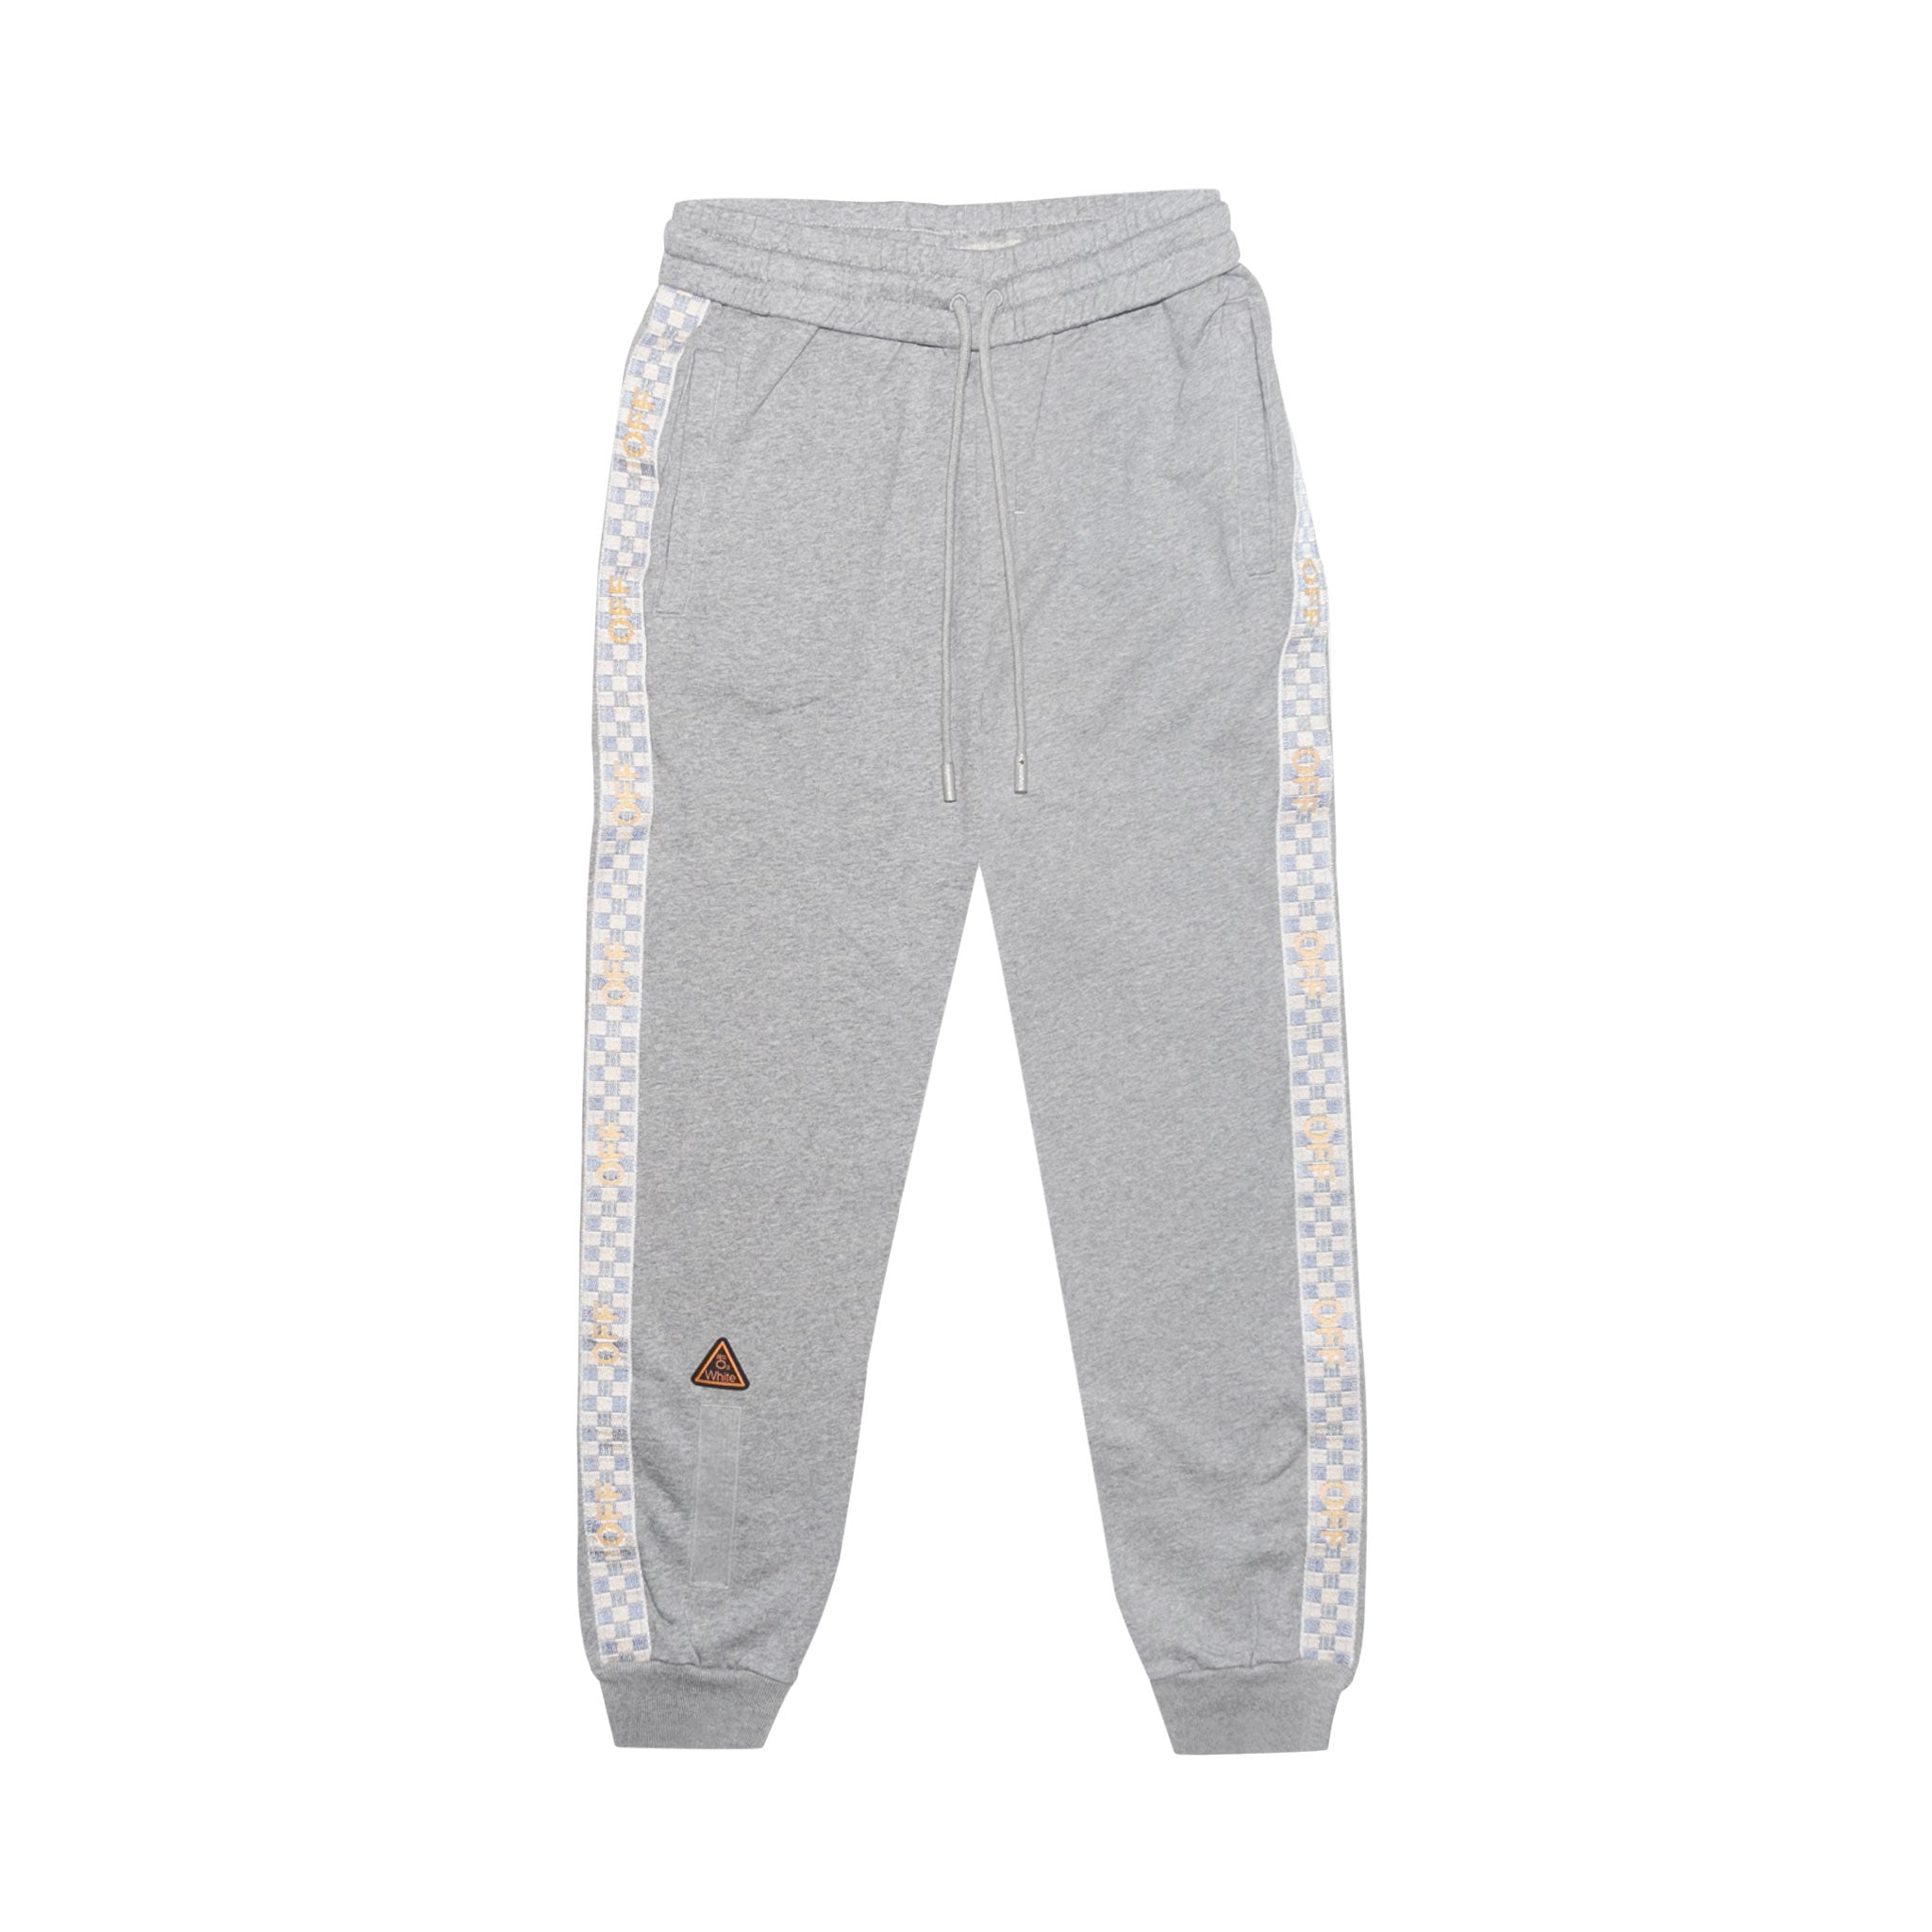 SWEATPANT WITH SIDE TAPE - MELANGE GREY